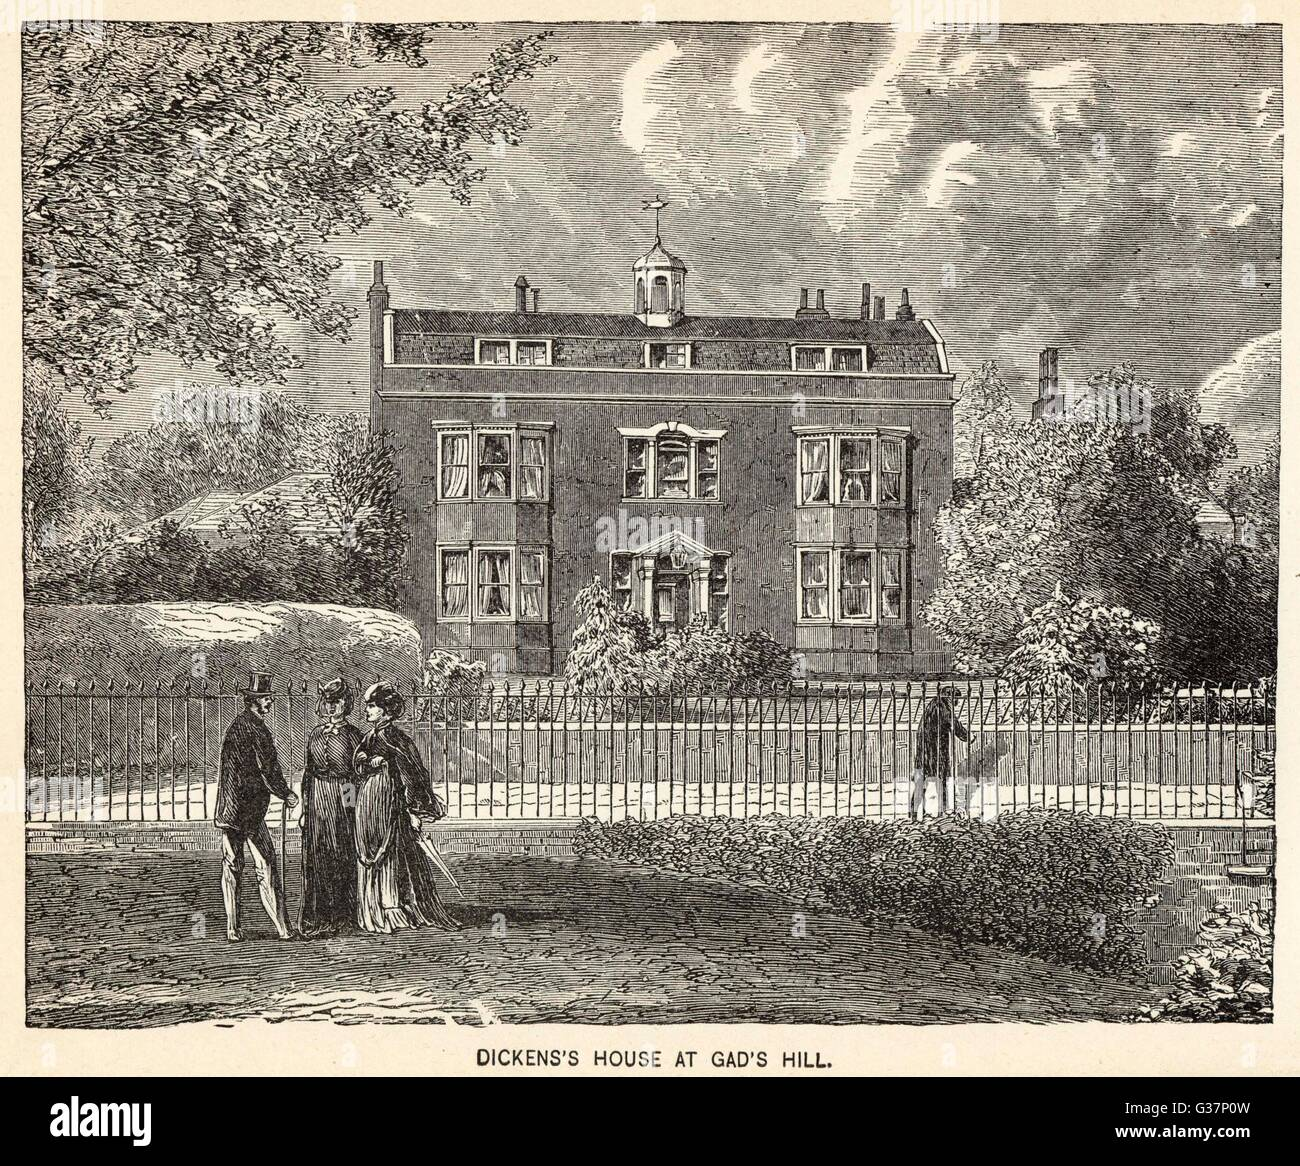 His home at Gad's Hill, near Rochester, Kent         Date: 1812 - 1870 - Stock Image